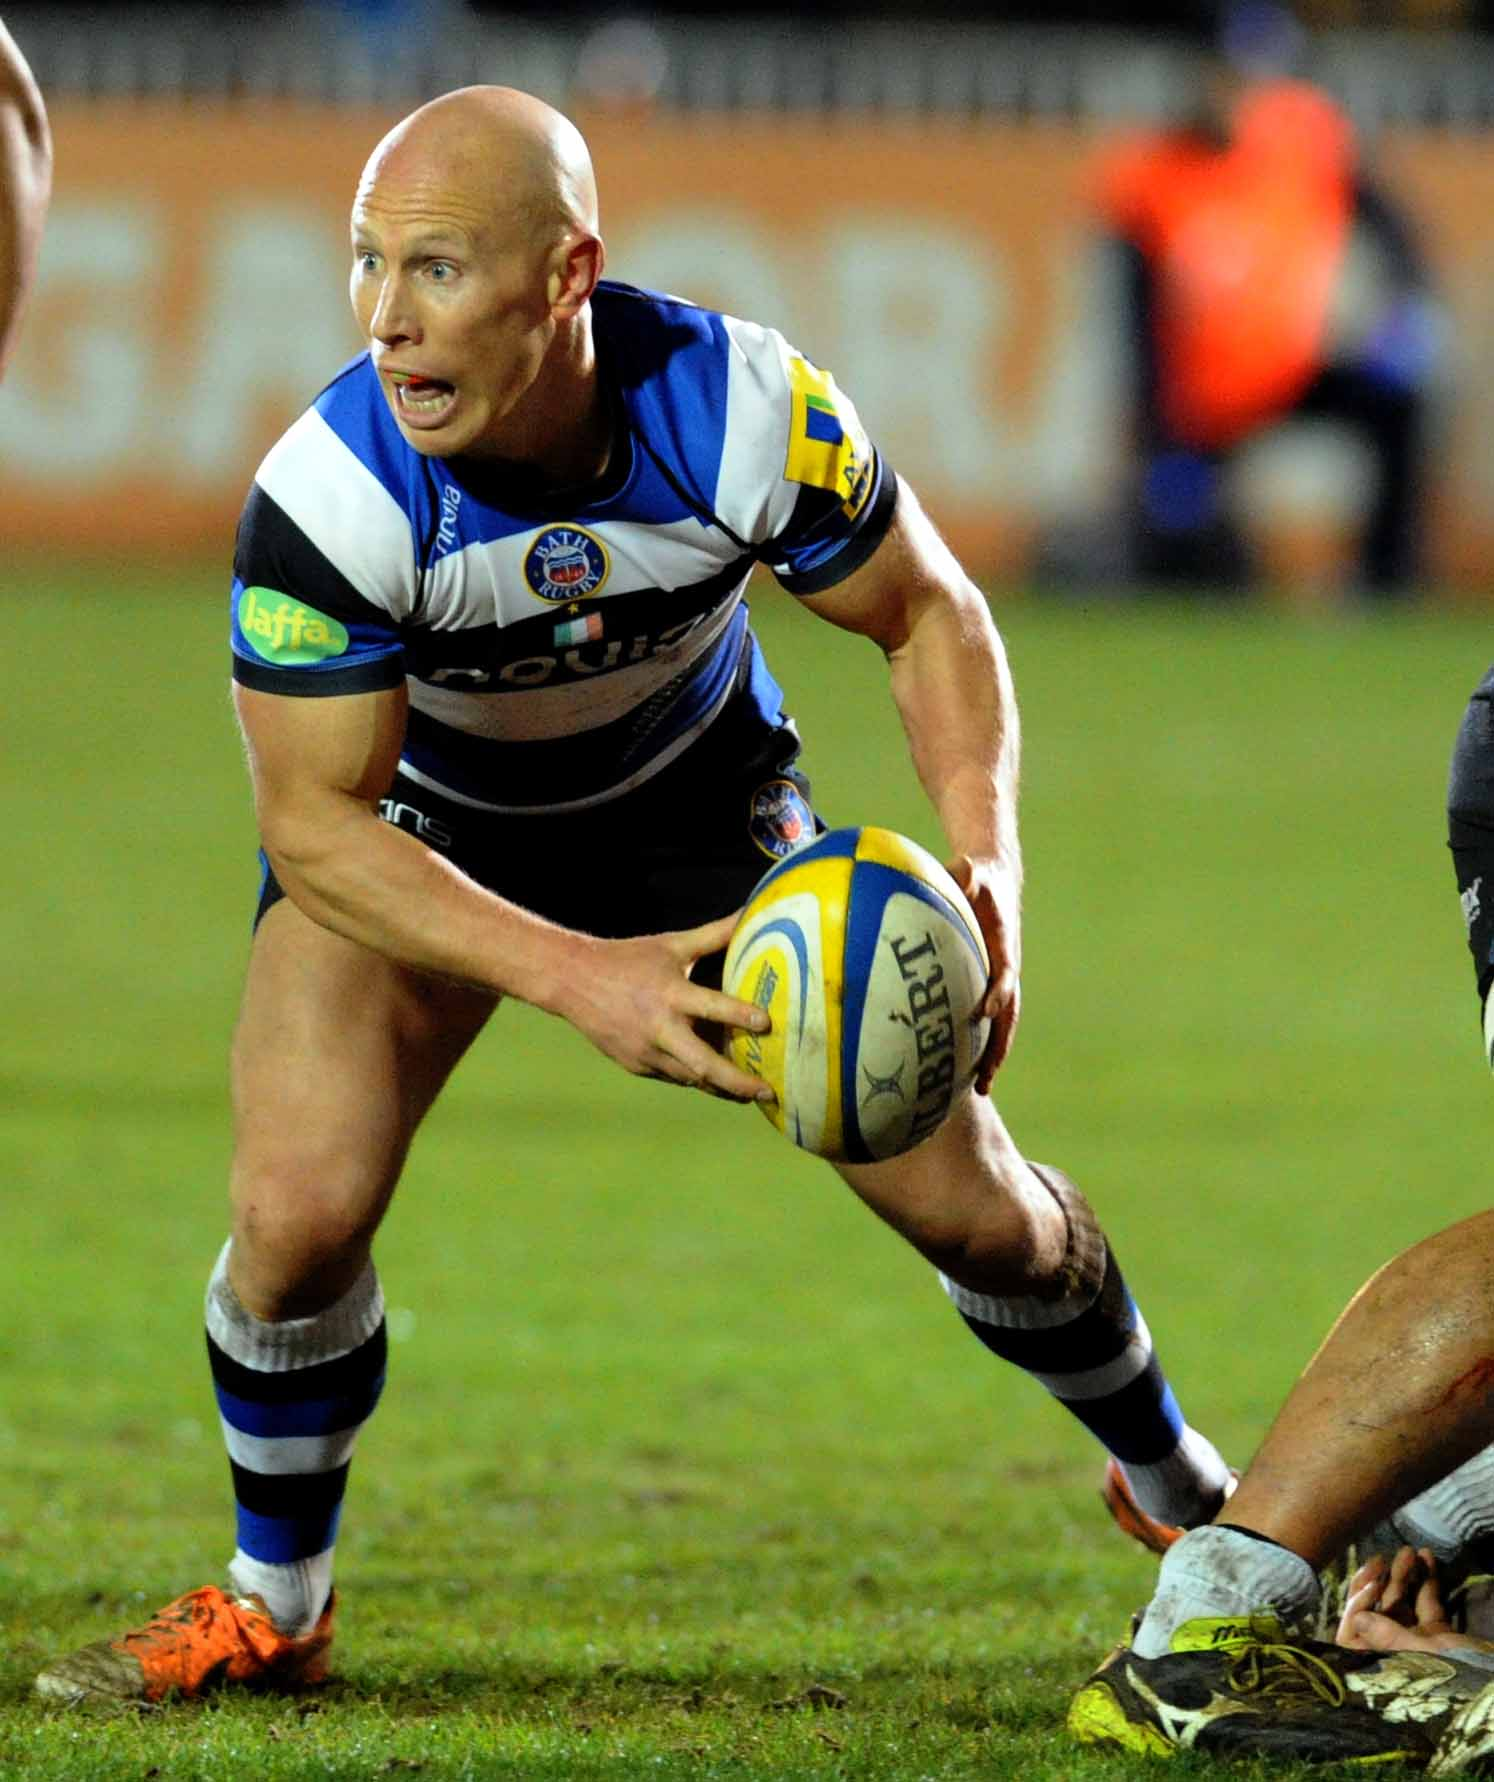 Peter Stringer has signed a new one-year deal with Bath